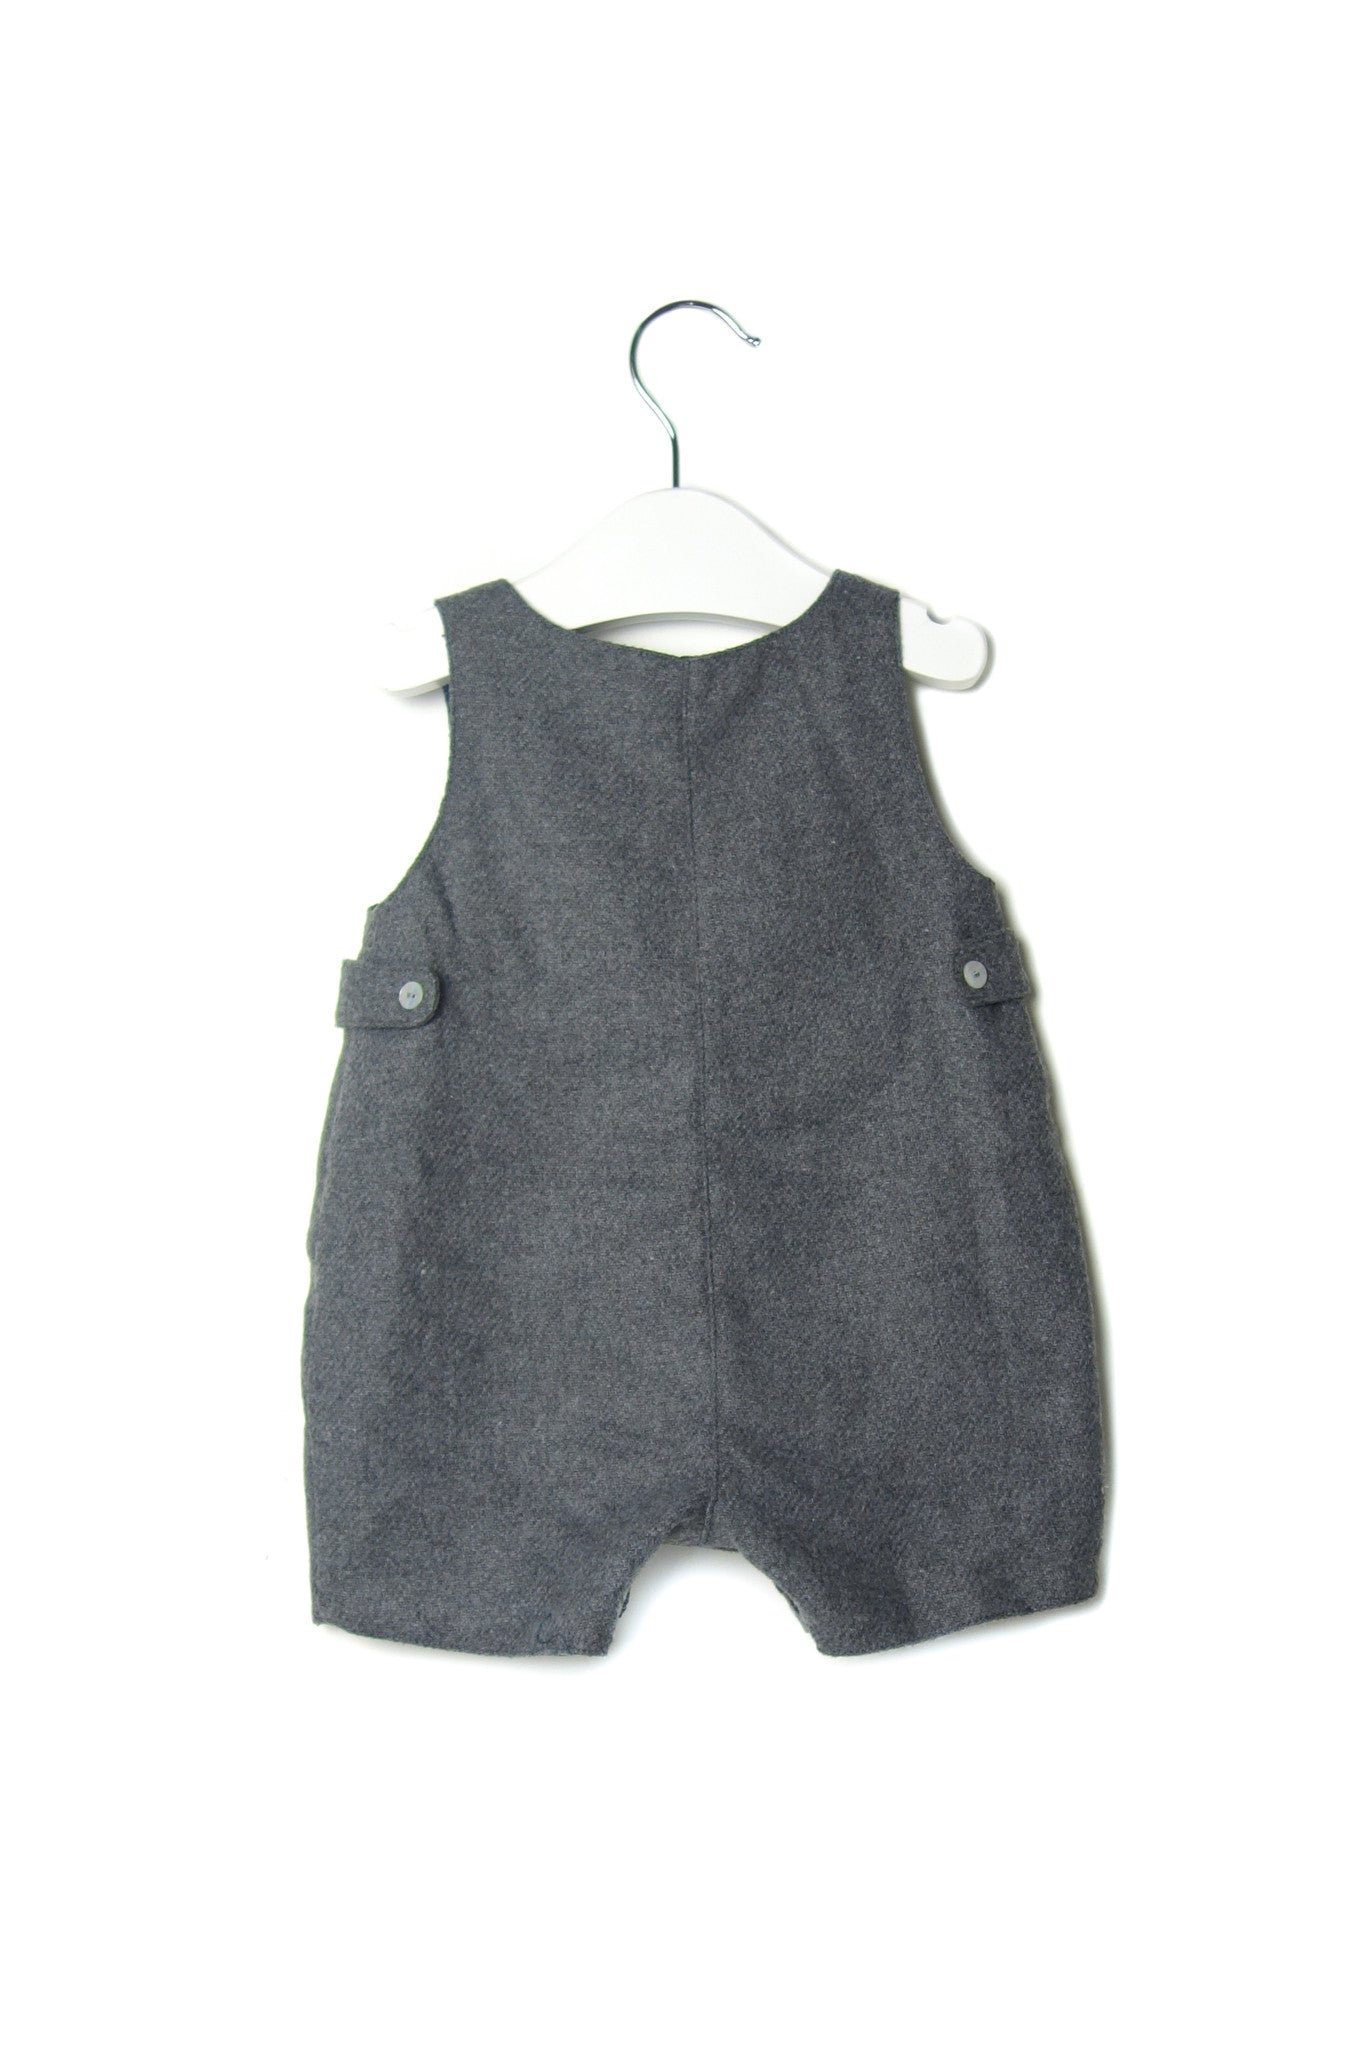 10001997 Chelsea Clothing Co. Baby~Overall 3-6M at Retykle